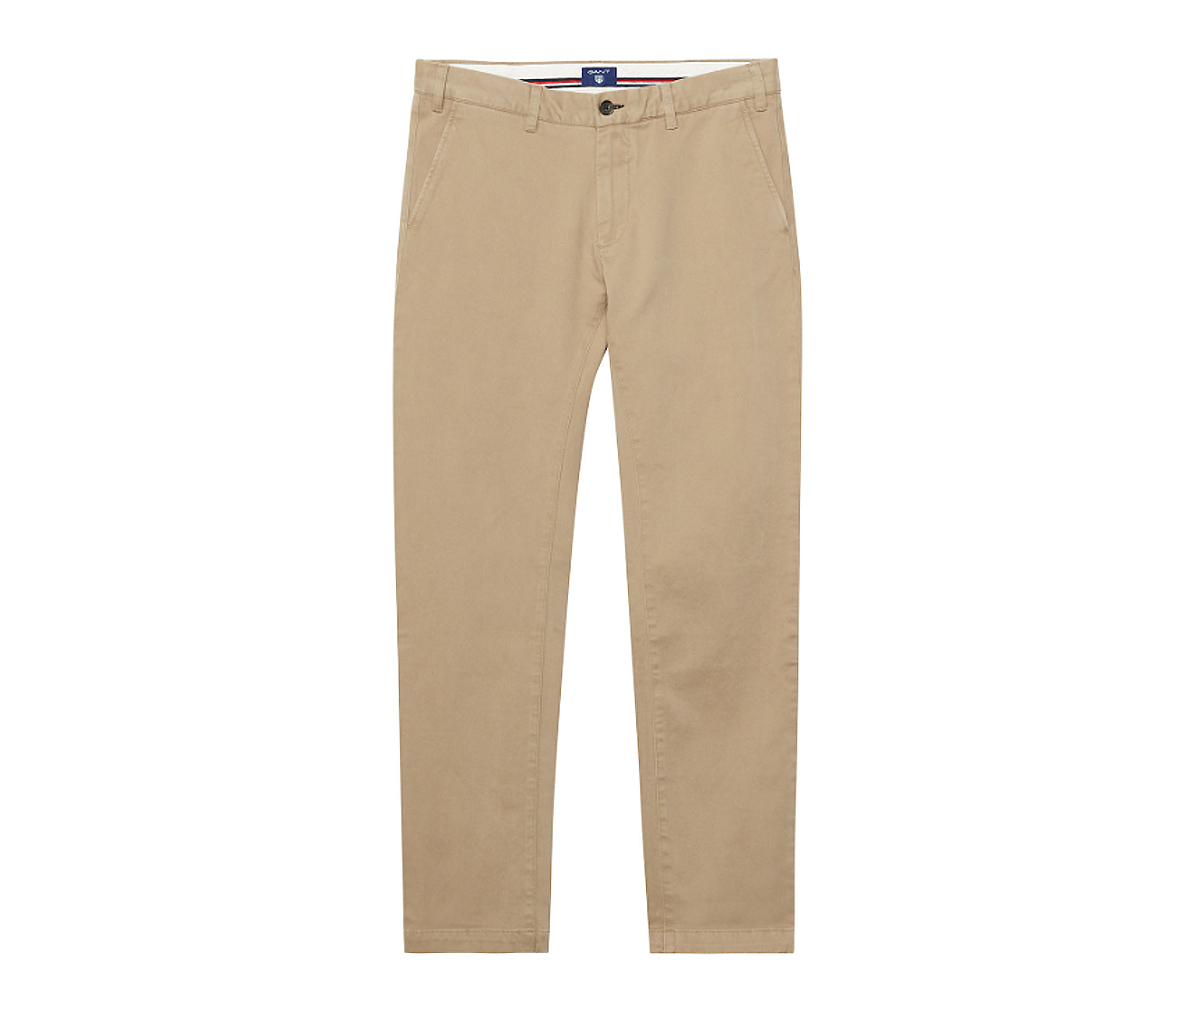 bf0be2d3a38 Khaki Pants  The 15 Best Pairs for Men